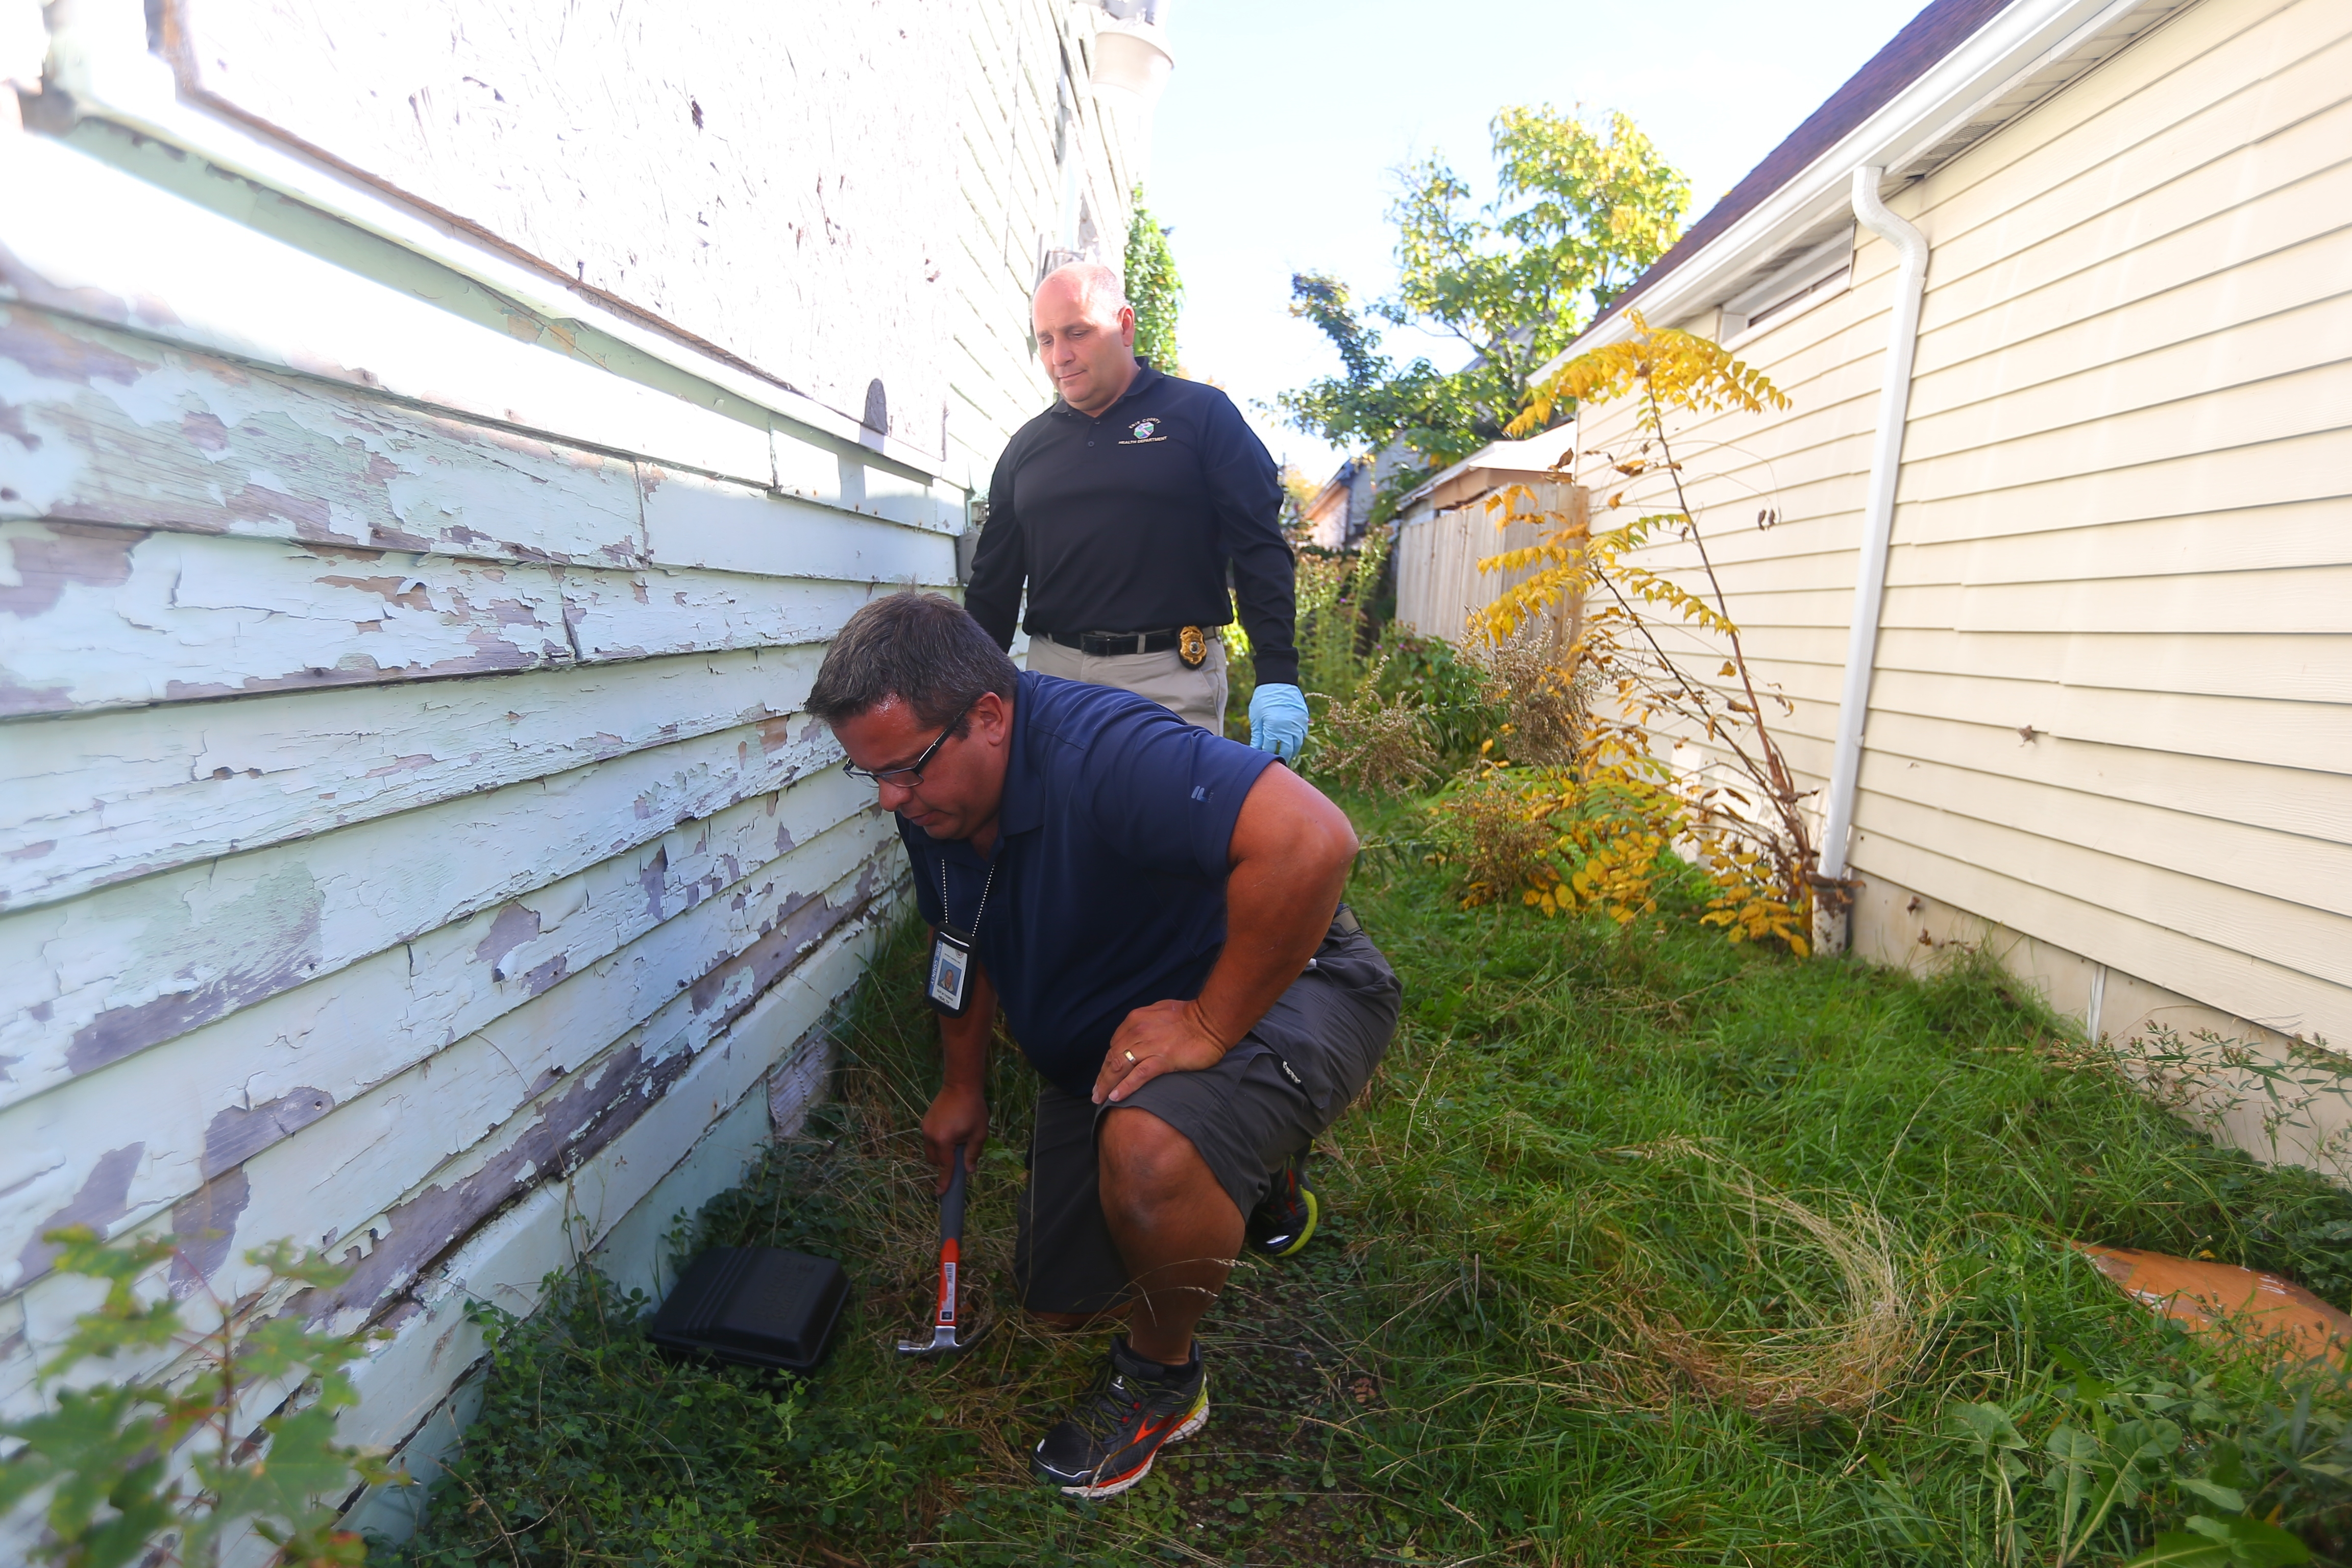 Guy Thomas, bottom, a Sr. Vector Control Investigator with the Erie County Vector Control program spikes a trap to the ground as Peter Tripi, Erie County Senior Public Helth Sanitation, looks on  at  a Cable Street house in Buffalo Wednesday.  (John Hickey/Buffalo News)